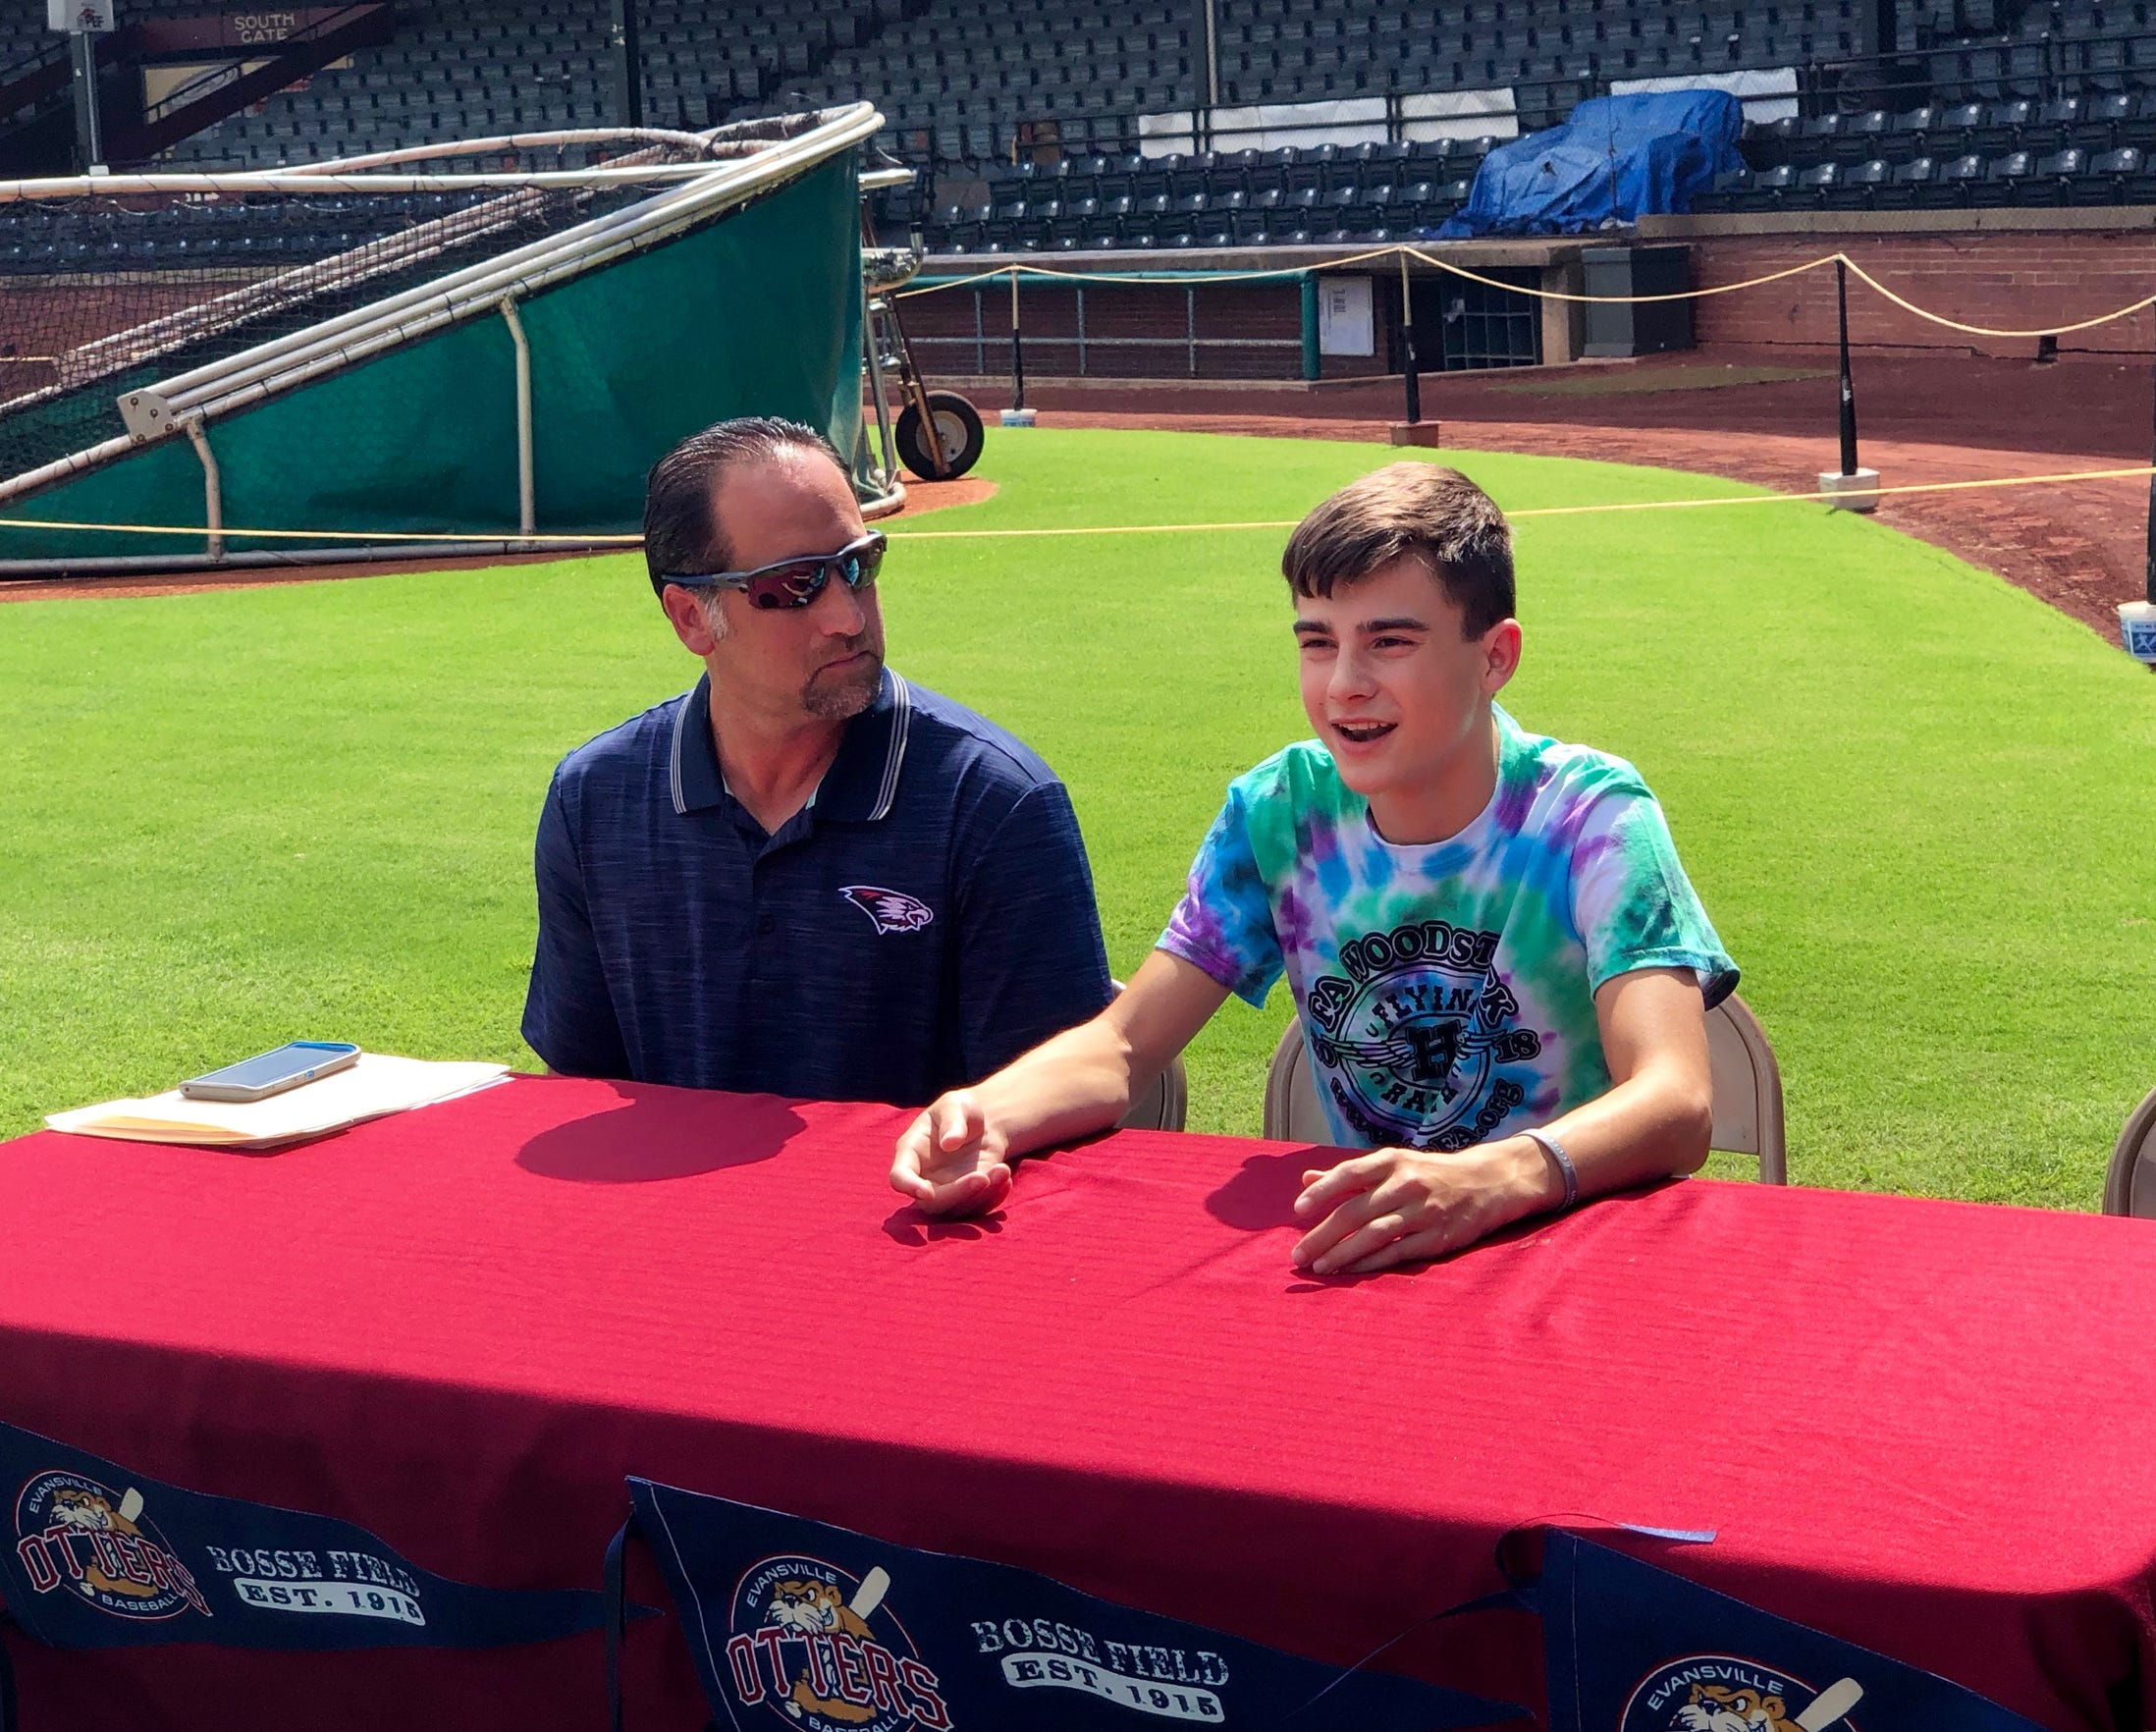 USI baseball coach Tracy Archuleta sits with his son Sam during a news conference last month at Bosse Field.